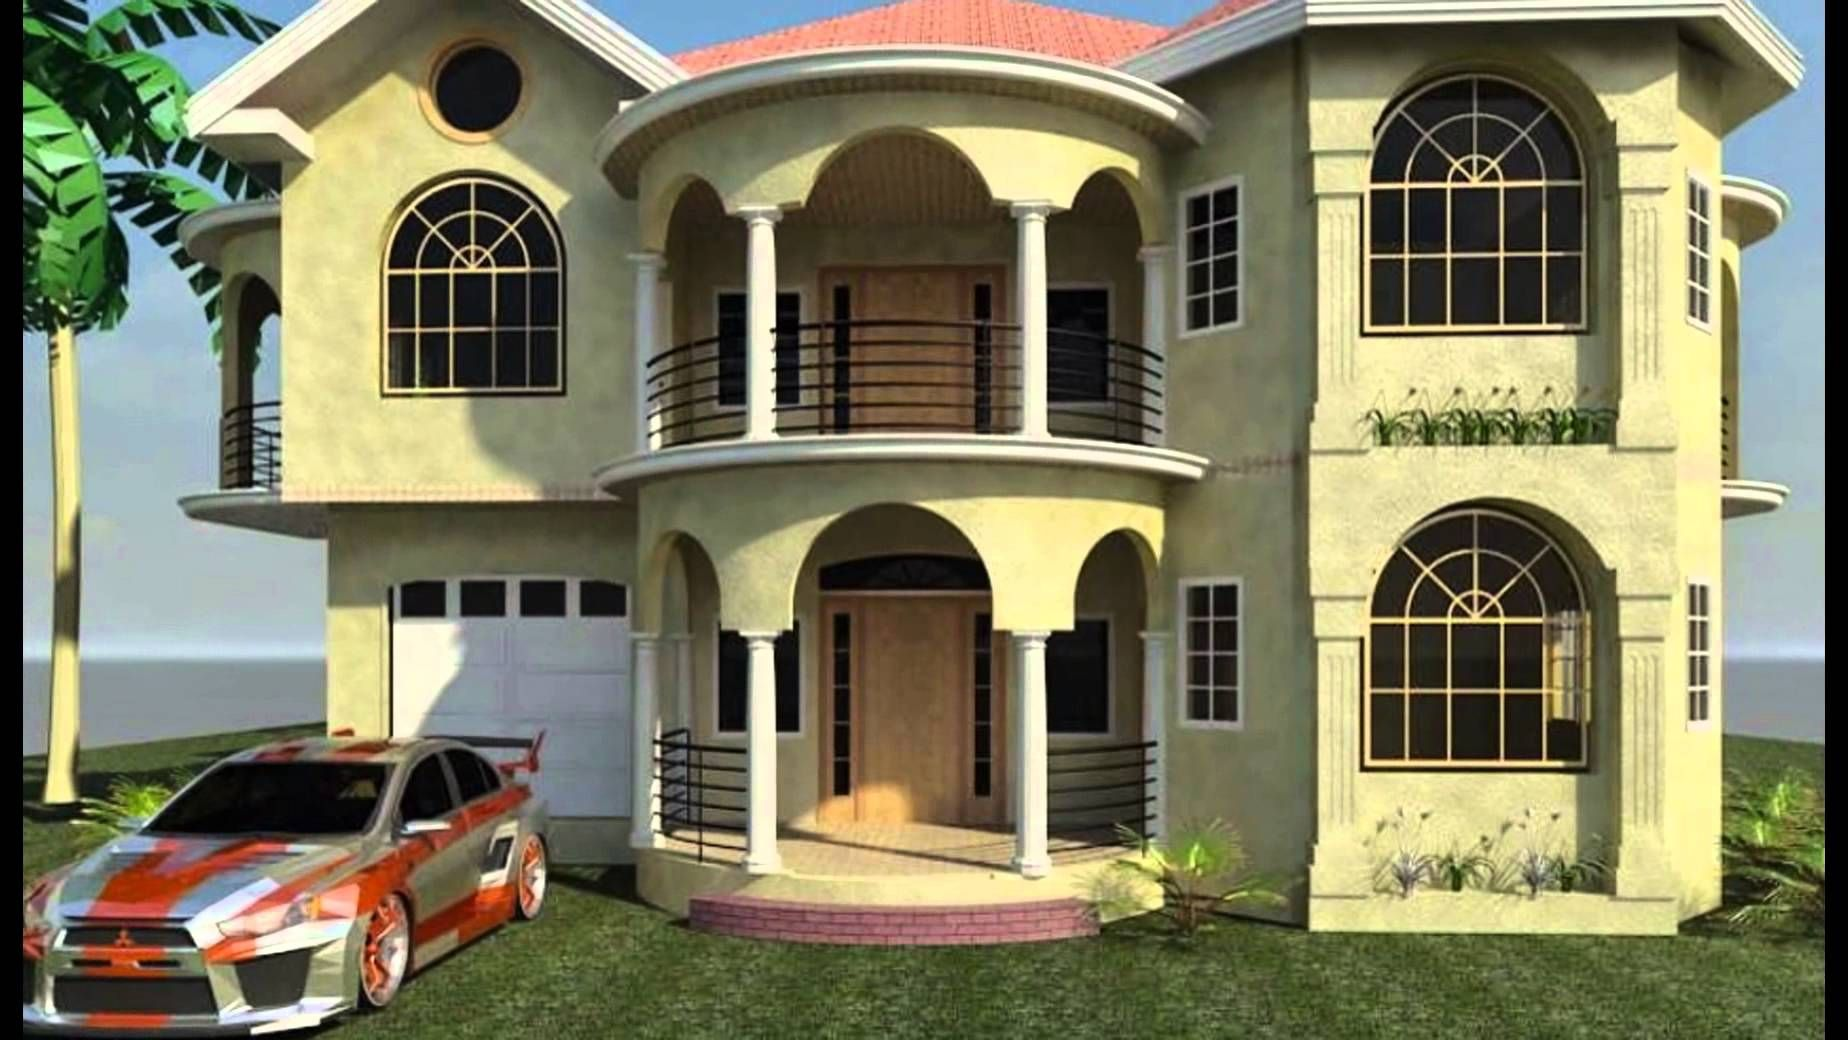 Amazing Designs Montego Bay Jamaica Architect Necca Constructions Youtube House Design Cheap Houses For Sale My House Plans